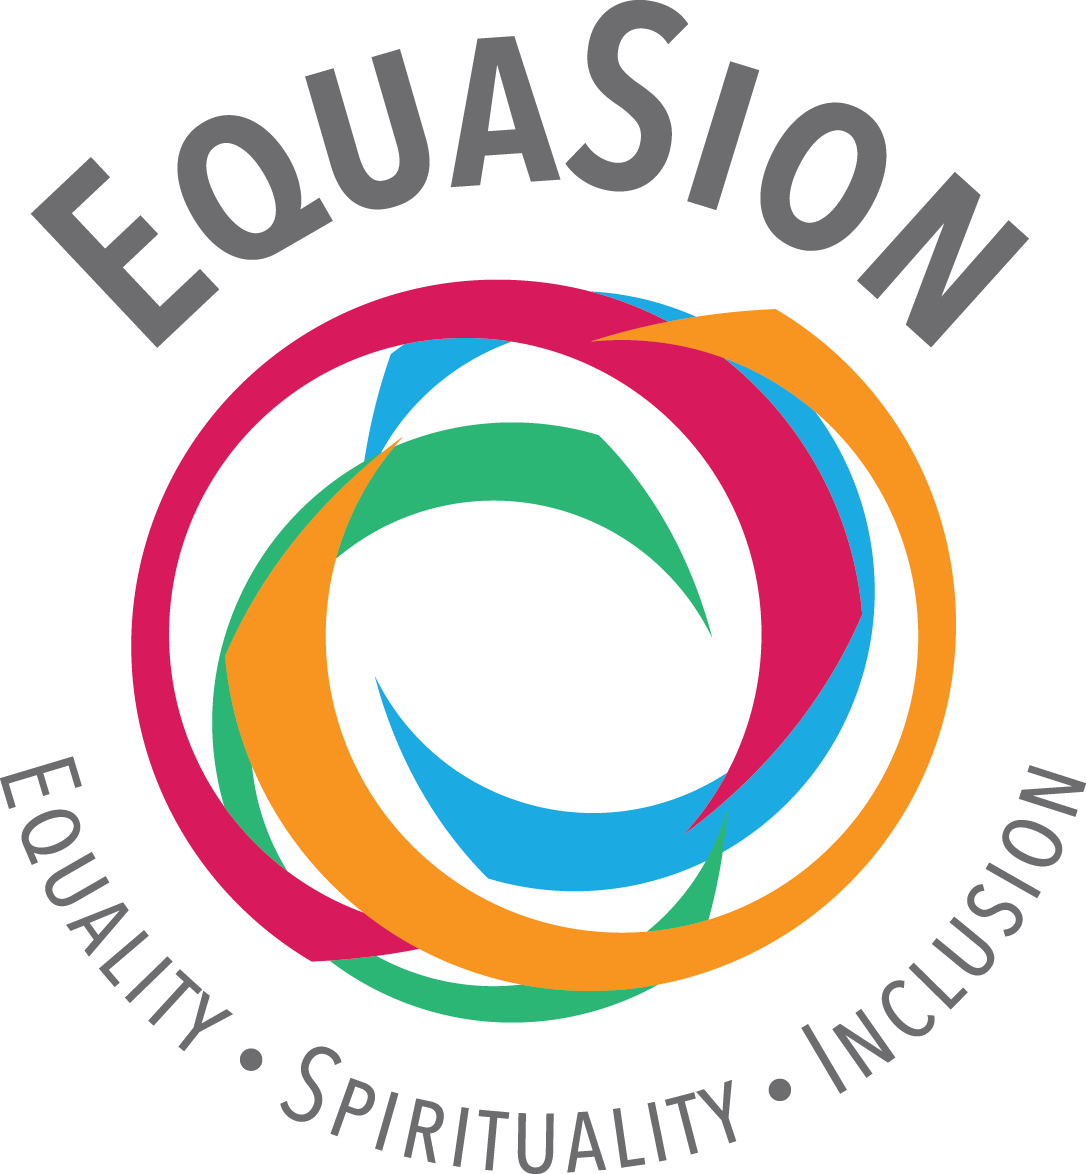 EquaSion